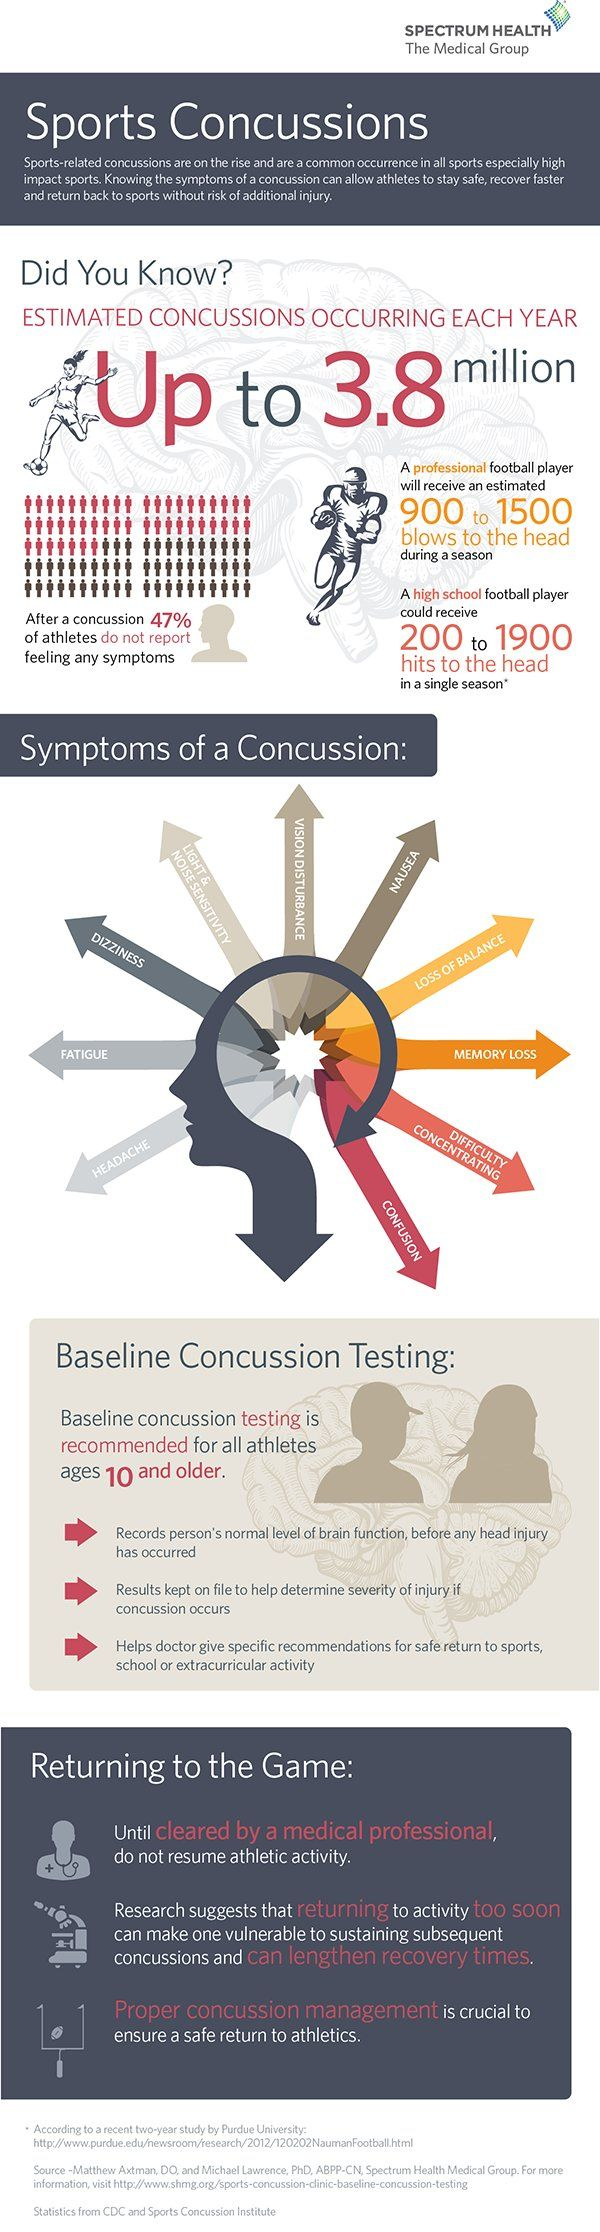 injuries and concussions in athletics essay Essay concussions in hockey kyle johnson concussions in hockey the sport of hockey is an intense test of power and will, and as a result of the injuries in sport are common realities that players and coaches are faced with.